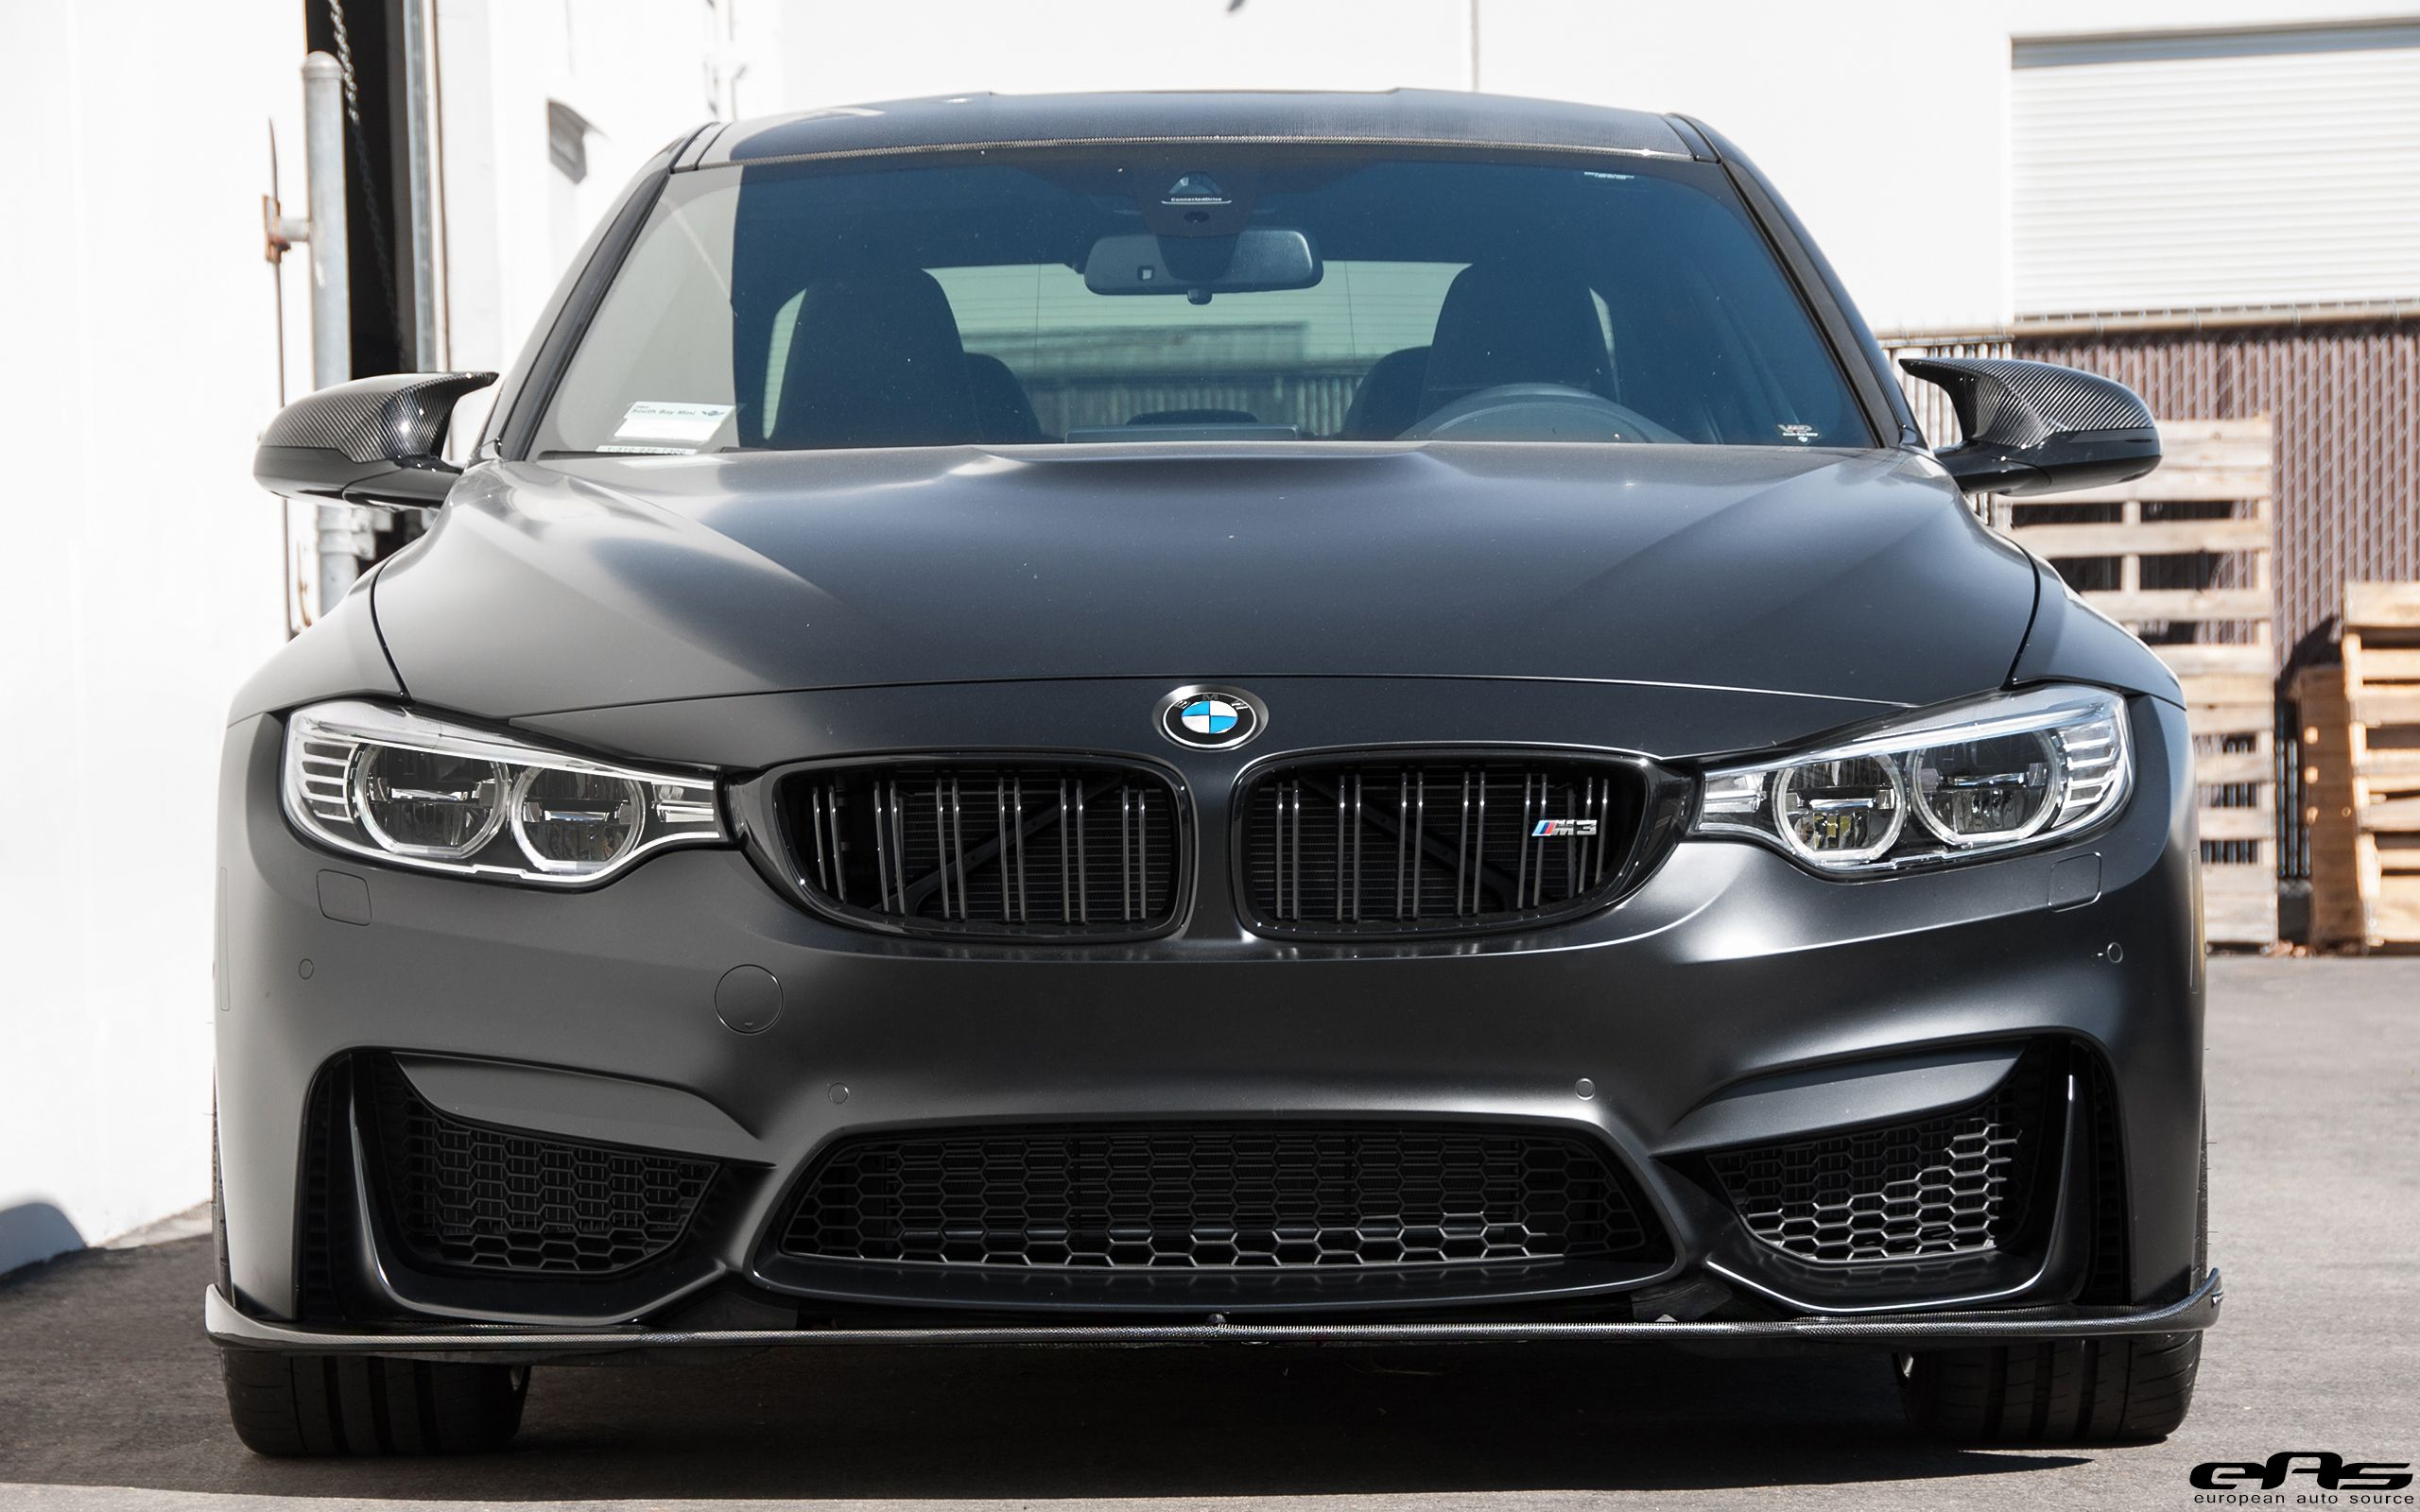 Frozen Black F80 M3 With Images Bmw Performance Bmw